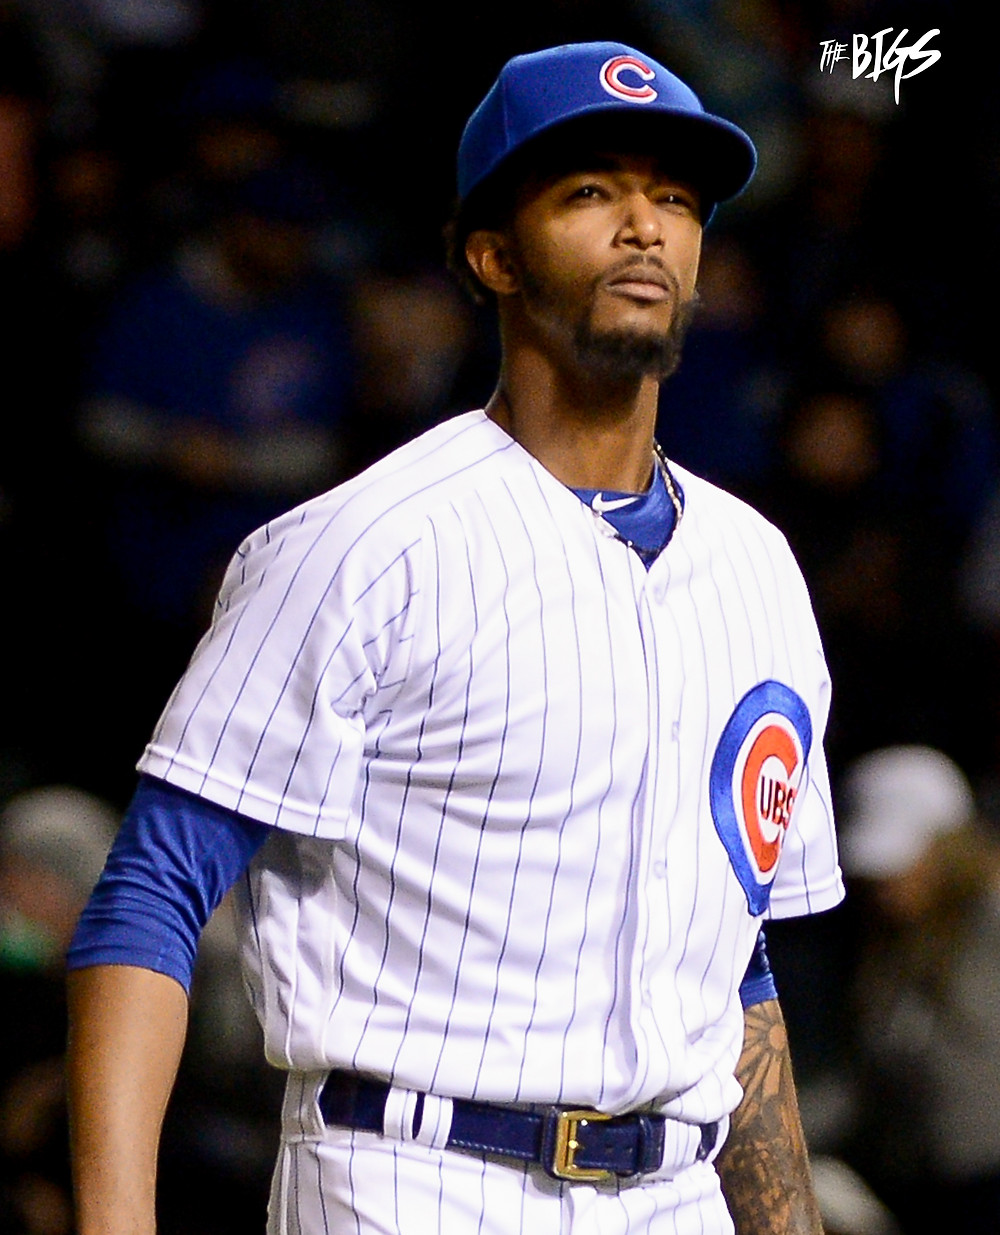 Carl Edwards Jr. knows what it's gonna take for the Cubs to win the NL central (John L. Alexander/The Bigs Visuals)